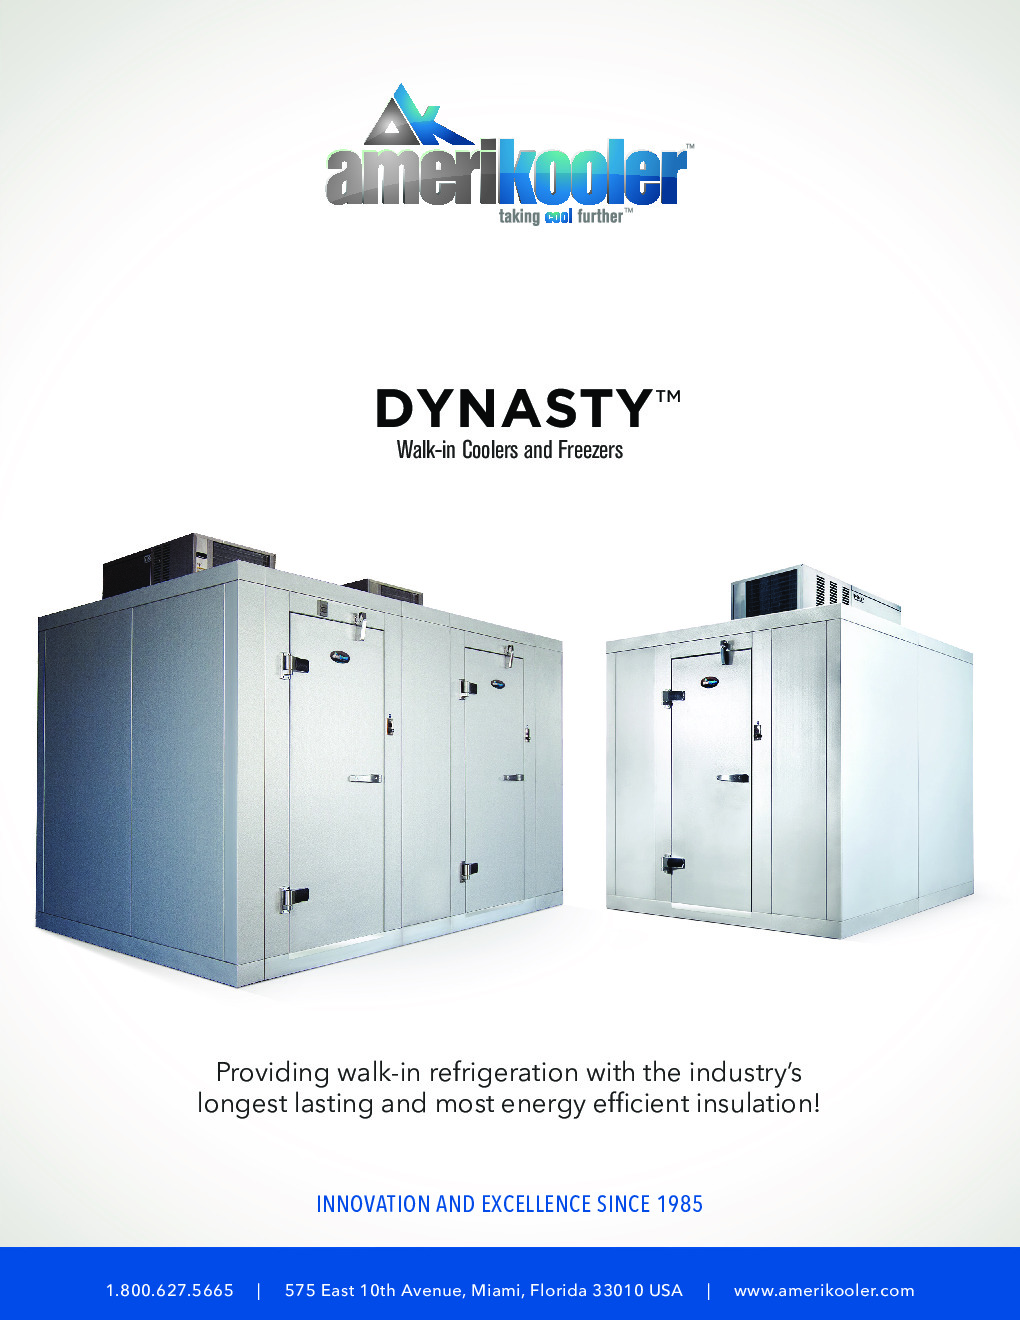 AmeriKooler DW081277N-5/7-SC 8' X 12' Walk-In Cooler, 7' L Cooler without Floor and 5' L Freezer, Self Contained